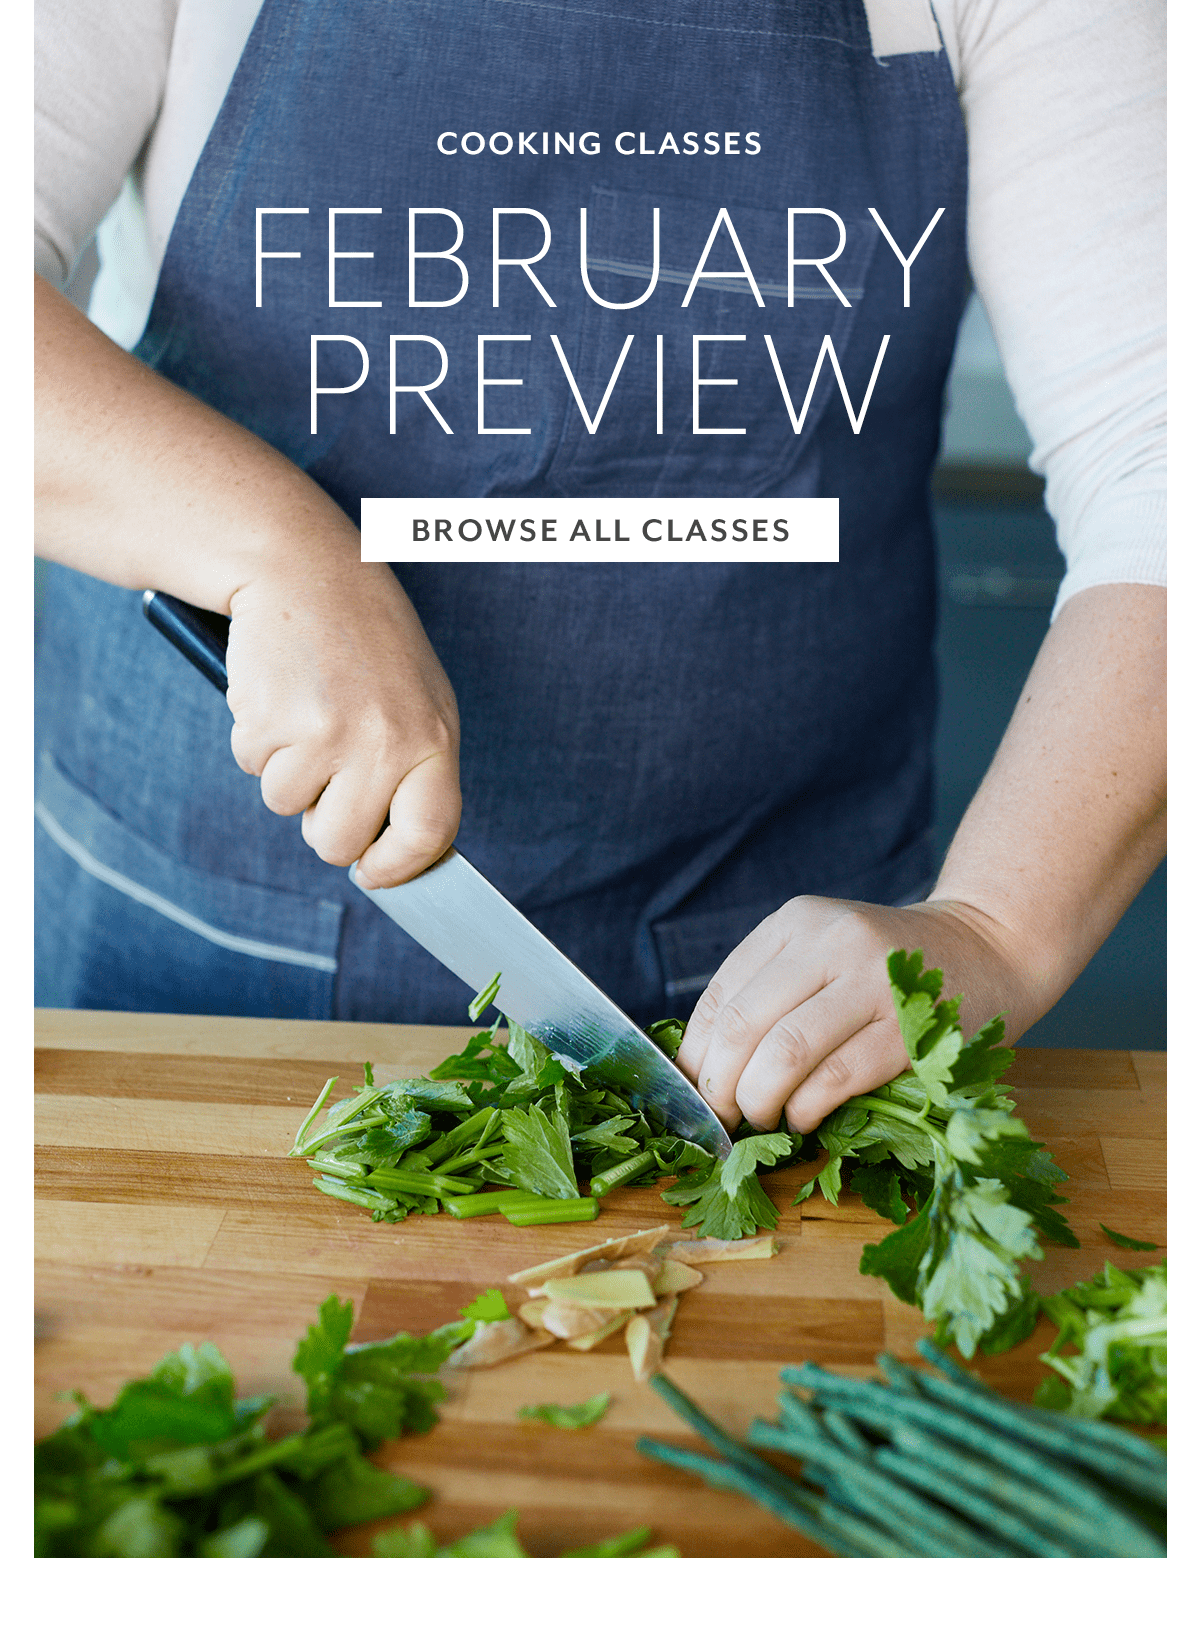 February Preview